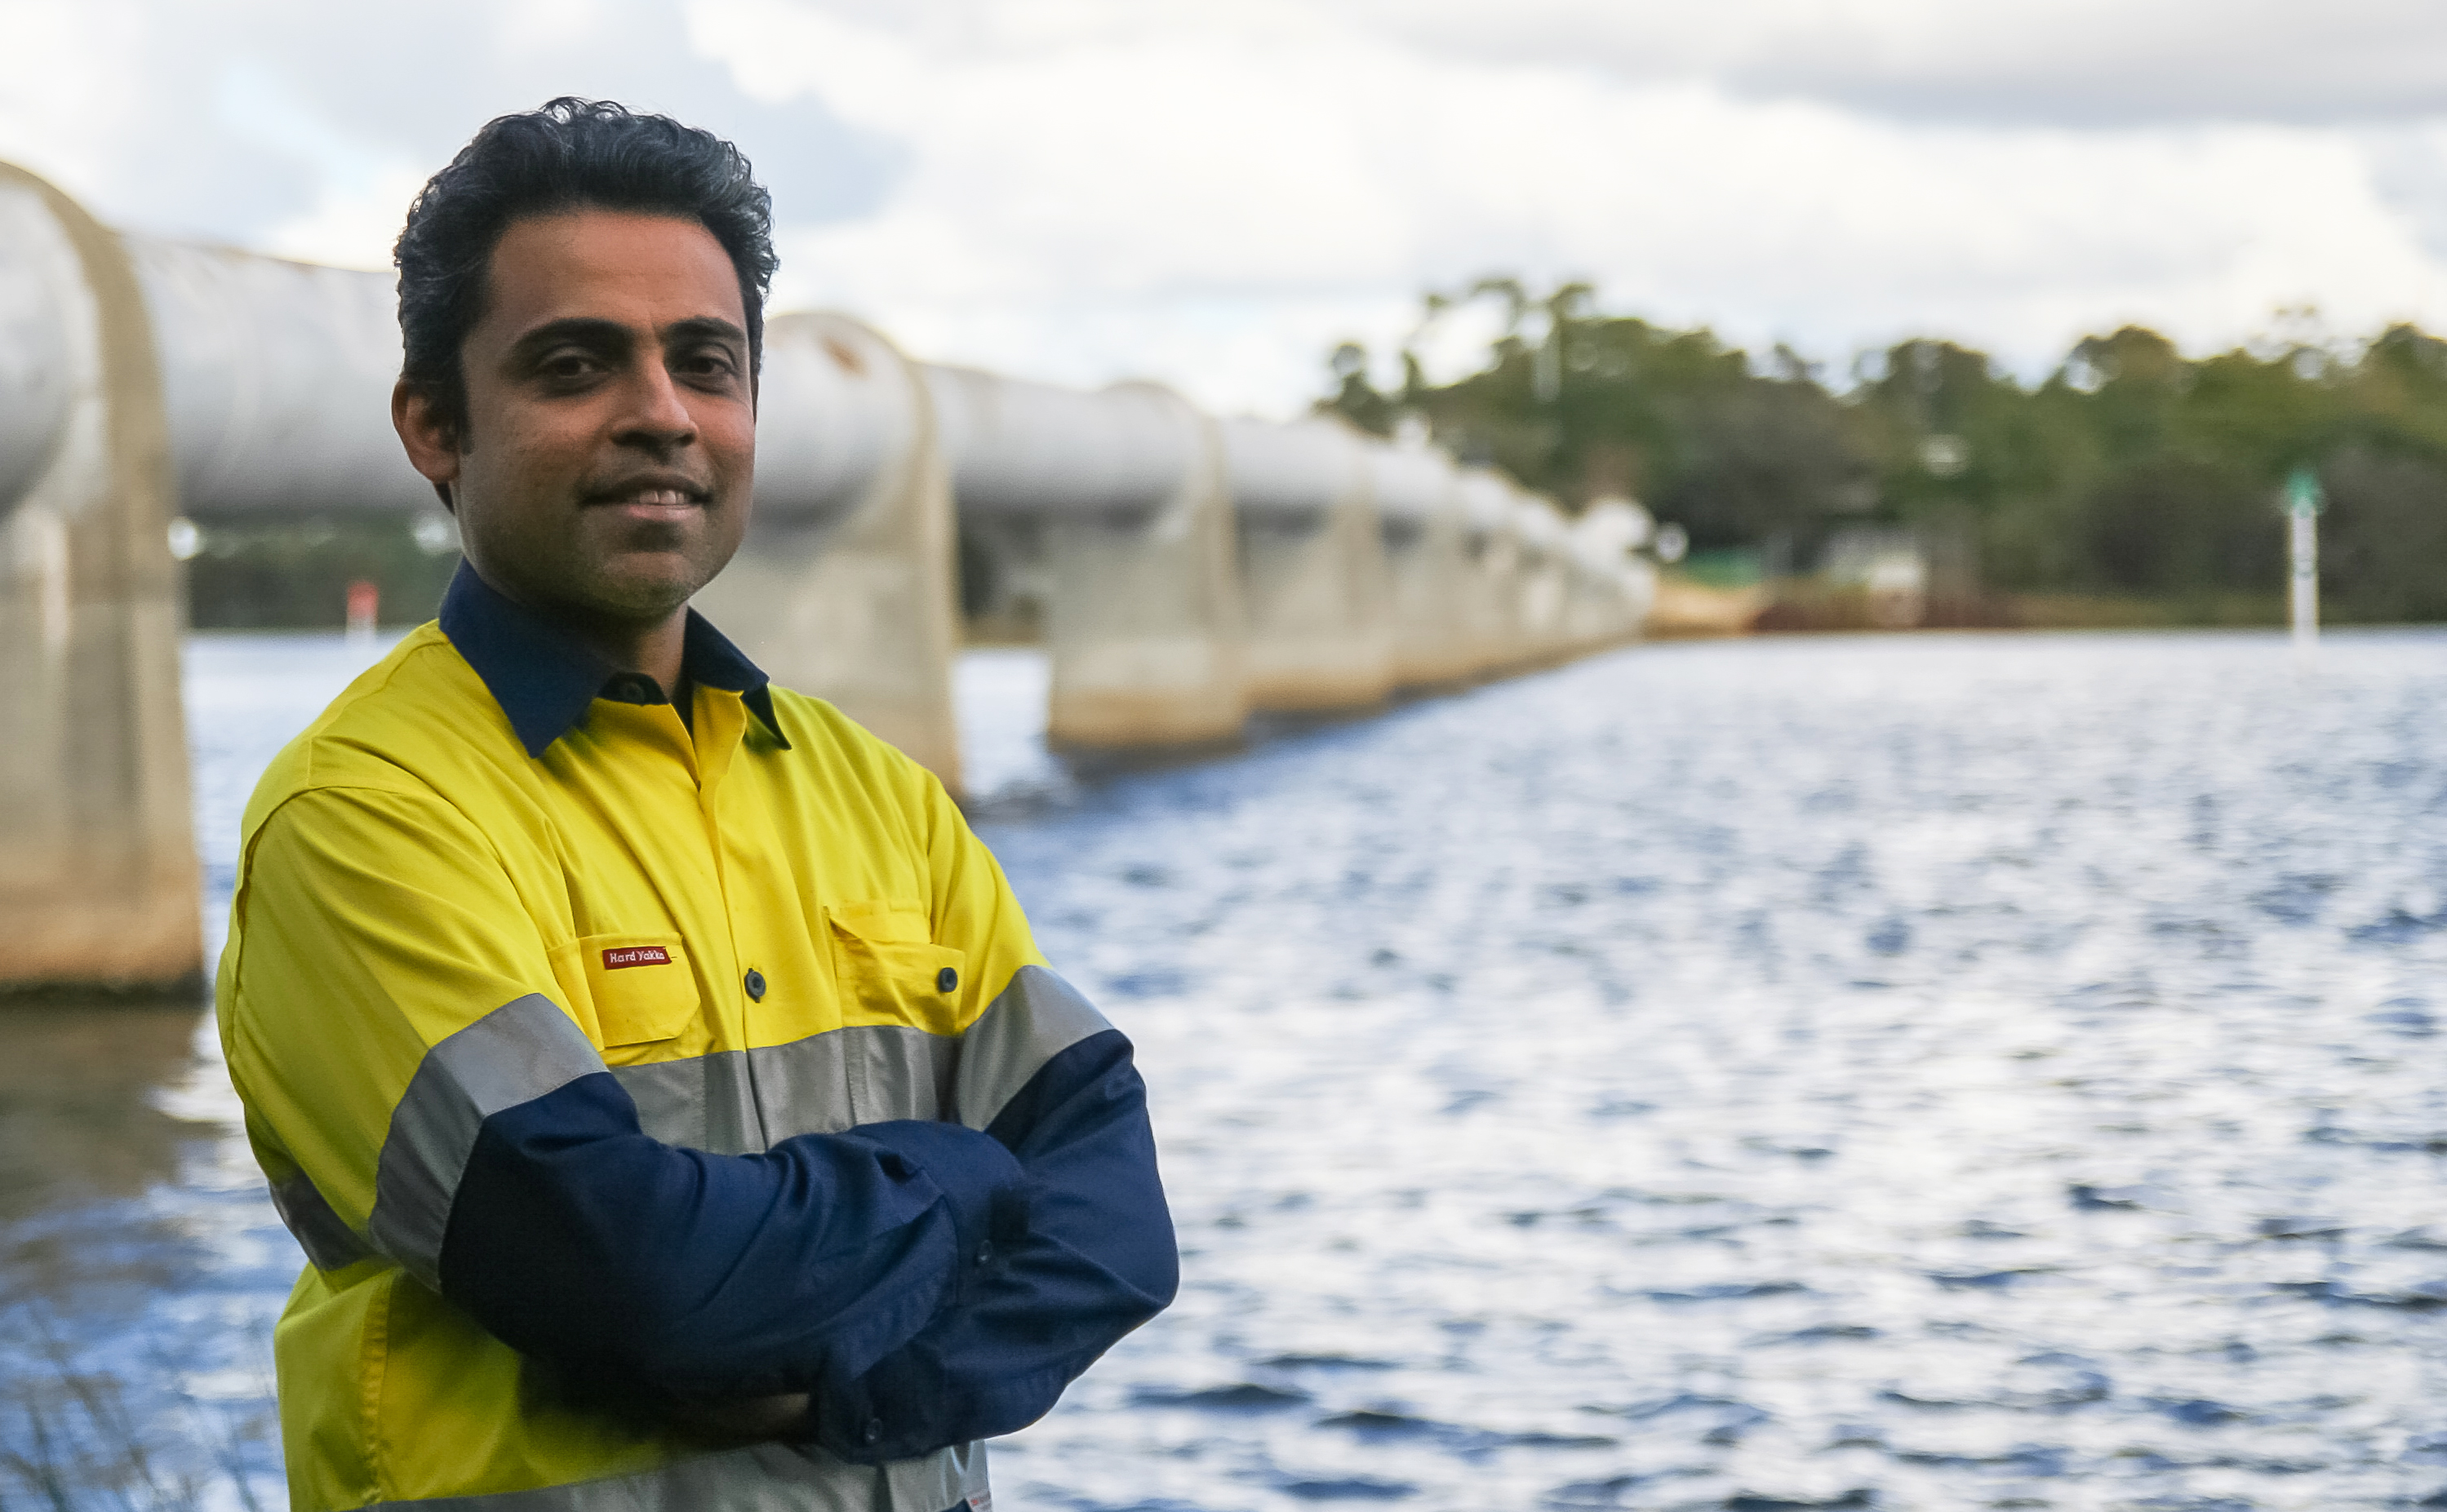 Man in high vis clothes standing next to a body of water with large pipeline running through the background.